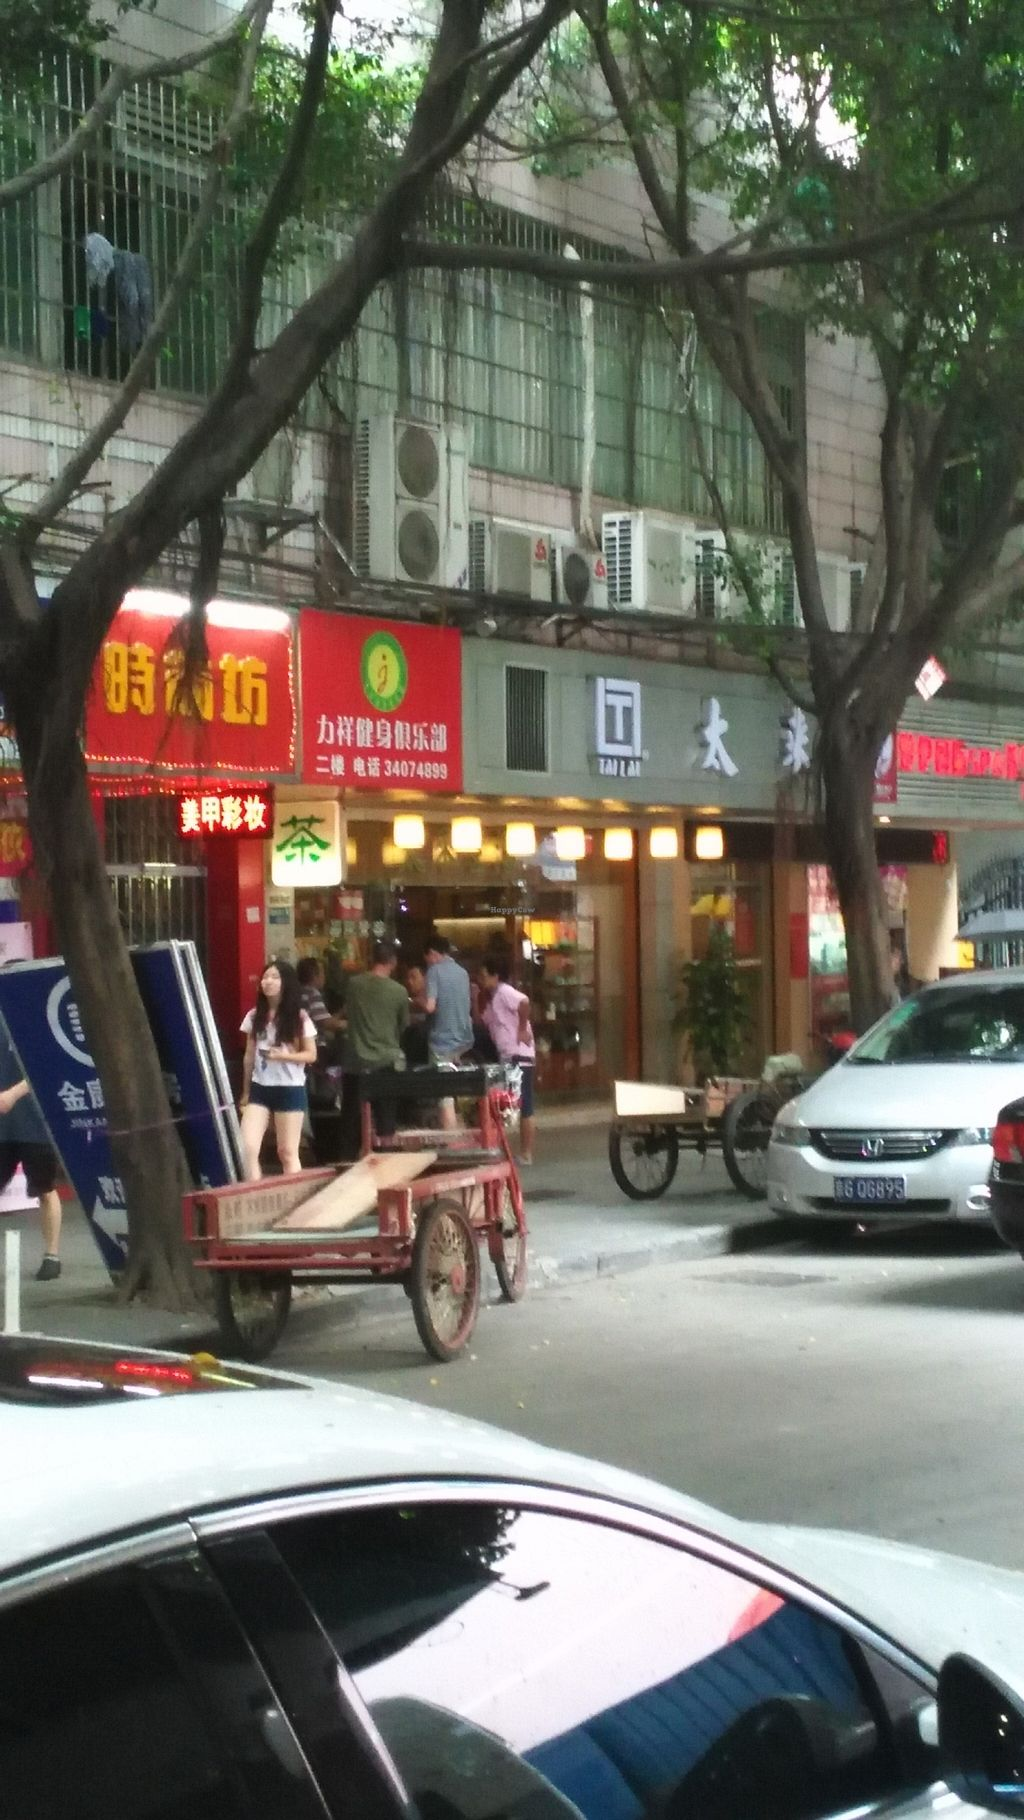 """Photo of REMOVE: Tai Lai Yang Sheng Guan  by <a href=""""/members/profile/Didier%20Marcel%20Vinck"""">Didier Marcel Vinck</a> <br/>view of yale street,location of Tai Lai <br/> September 4, 2015  - <a href='/contact/abuse/image/18340/116422'>Report</a>"""